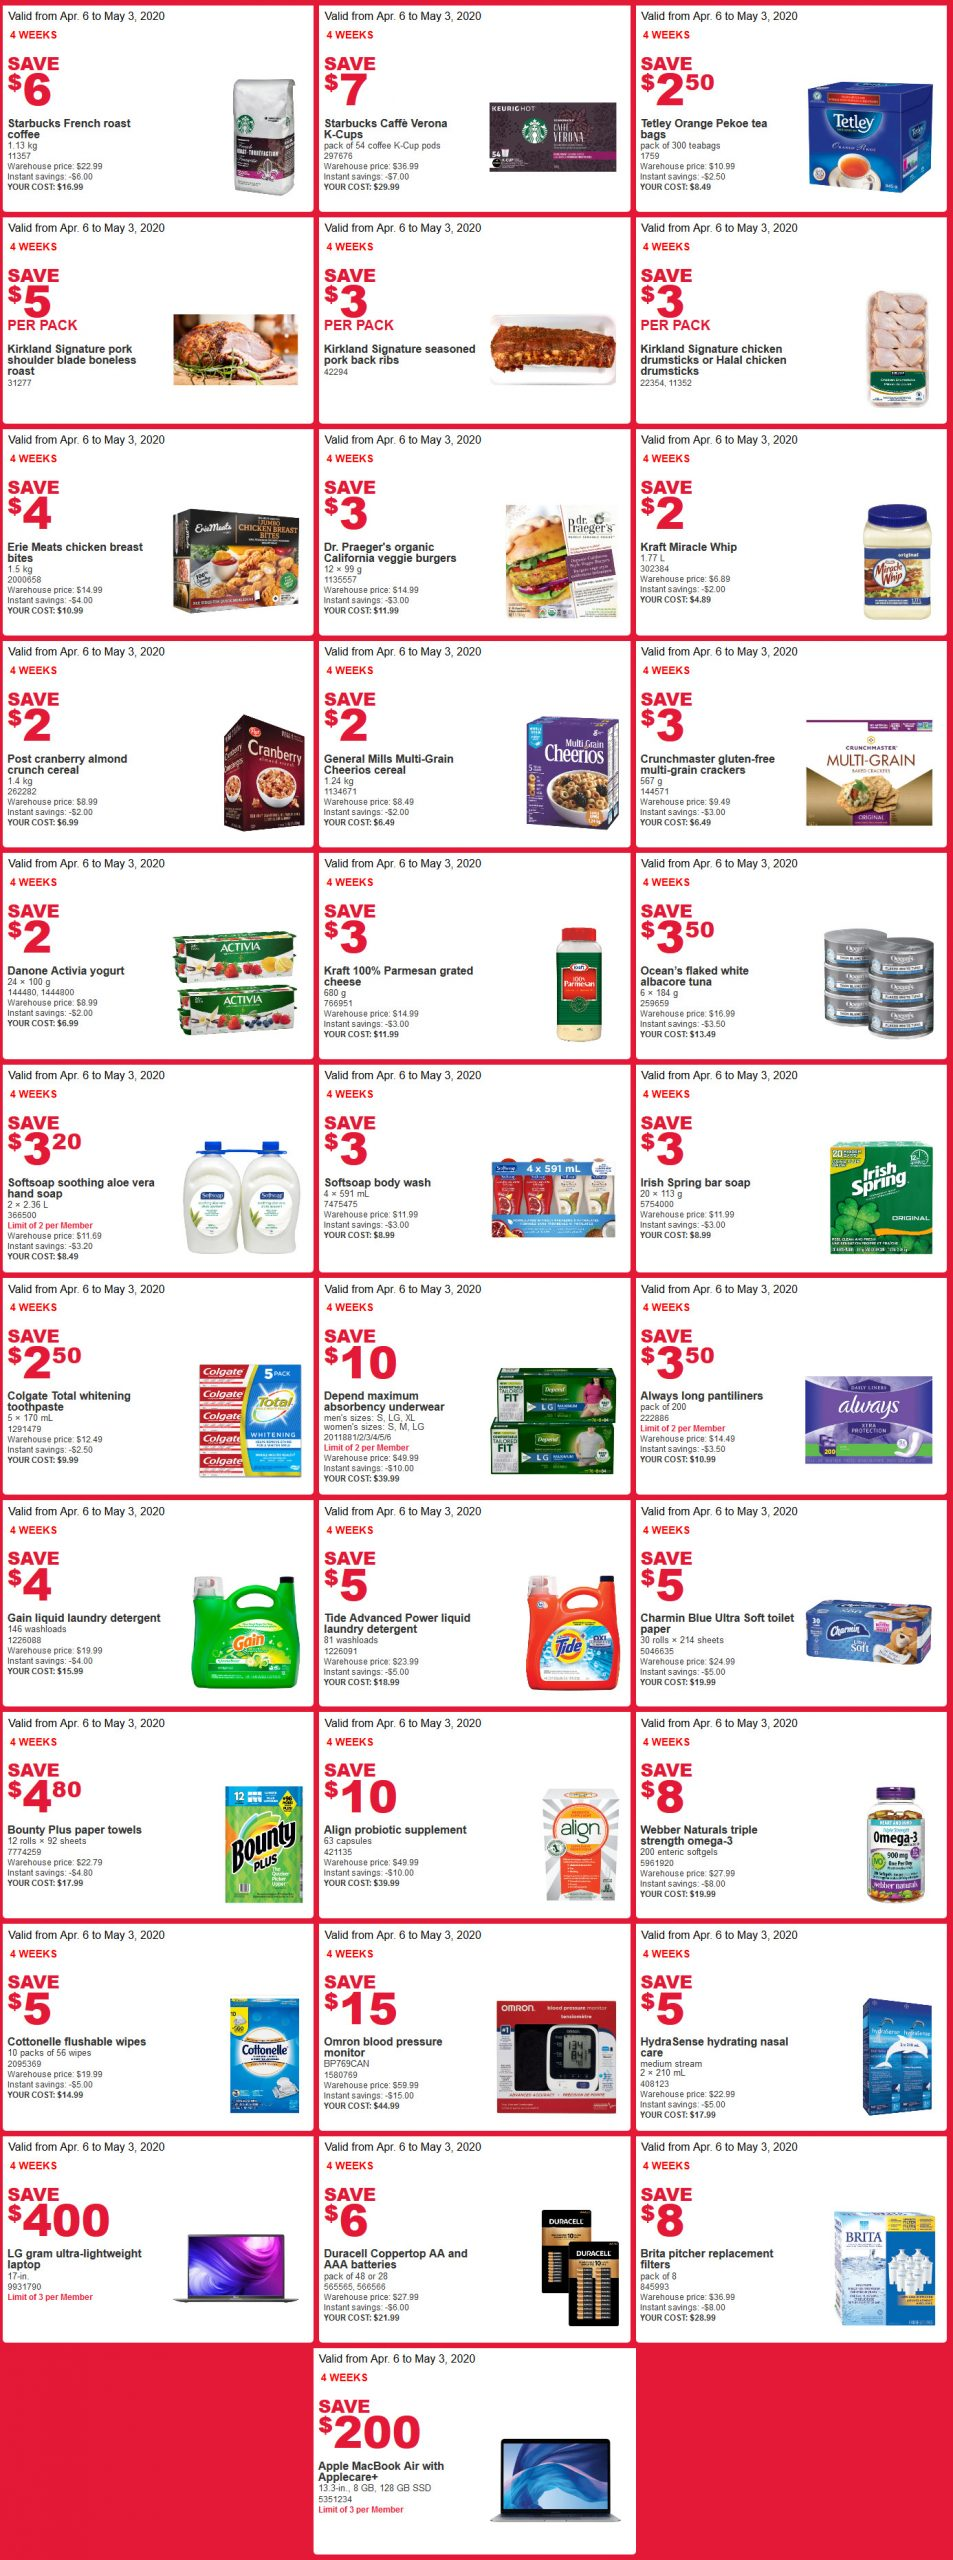 Costco flyer sales april 27th - May 3rd 2020